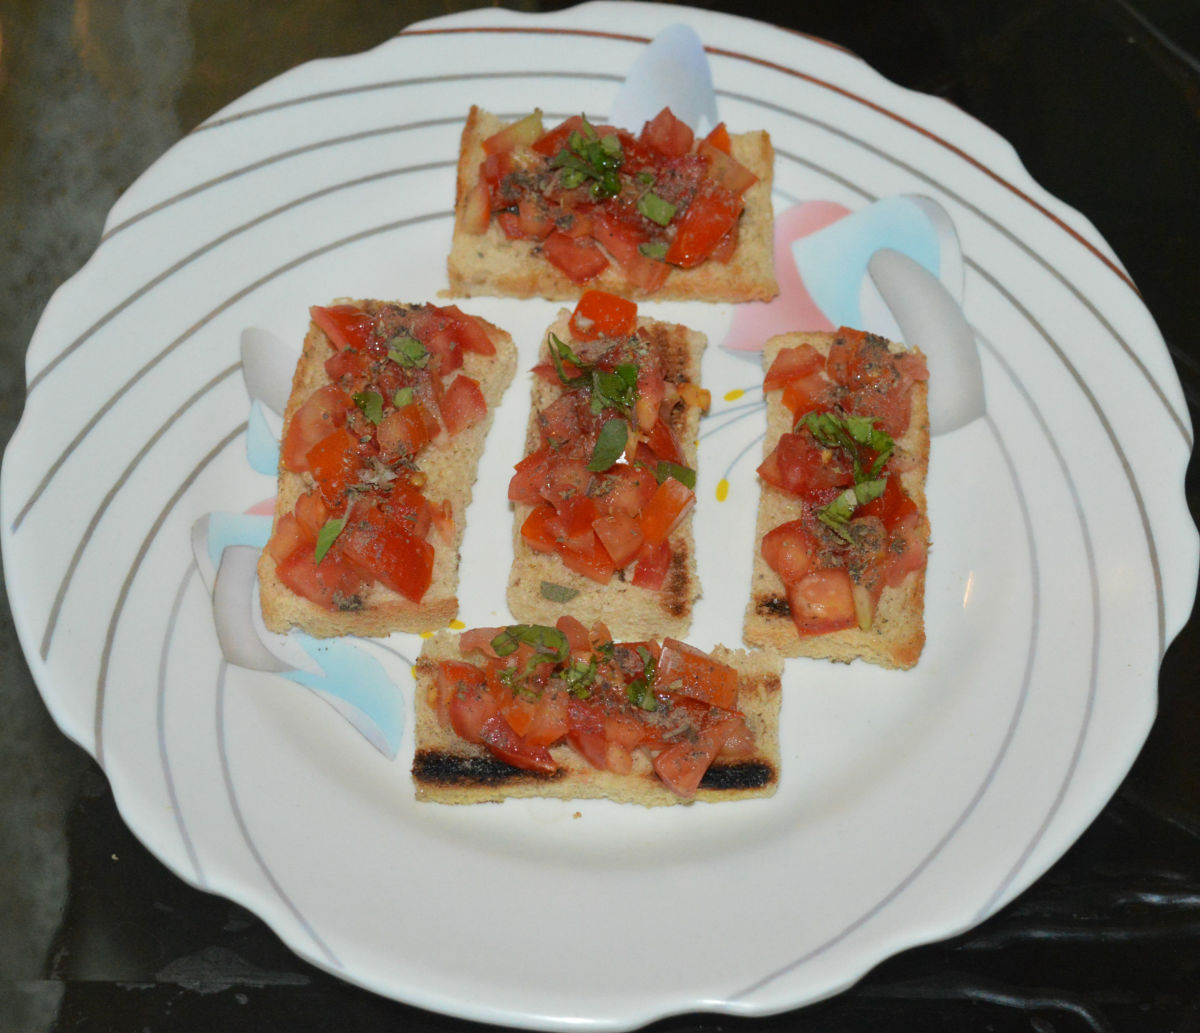 How to Make Italian Tomato Basil Bruschetta